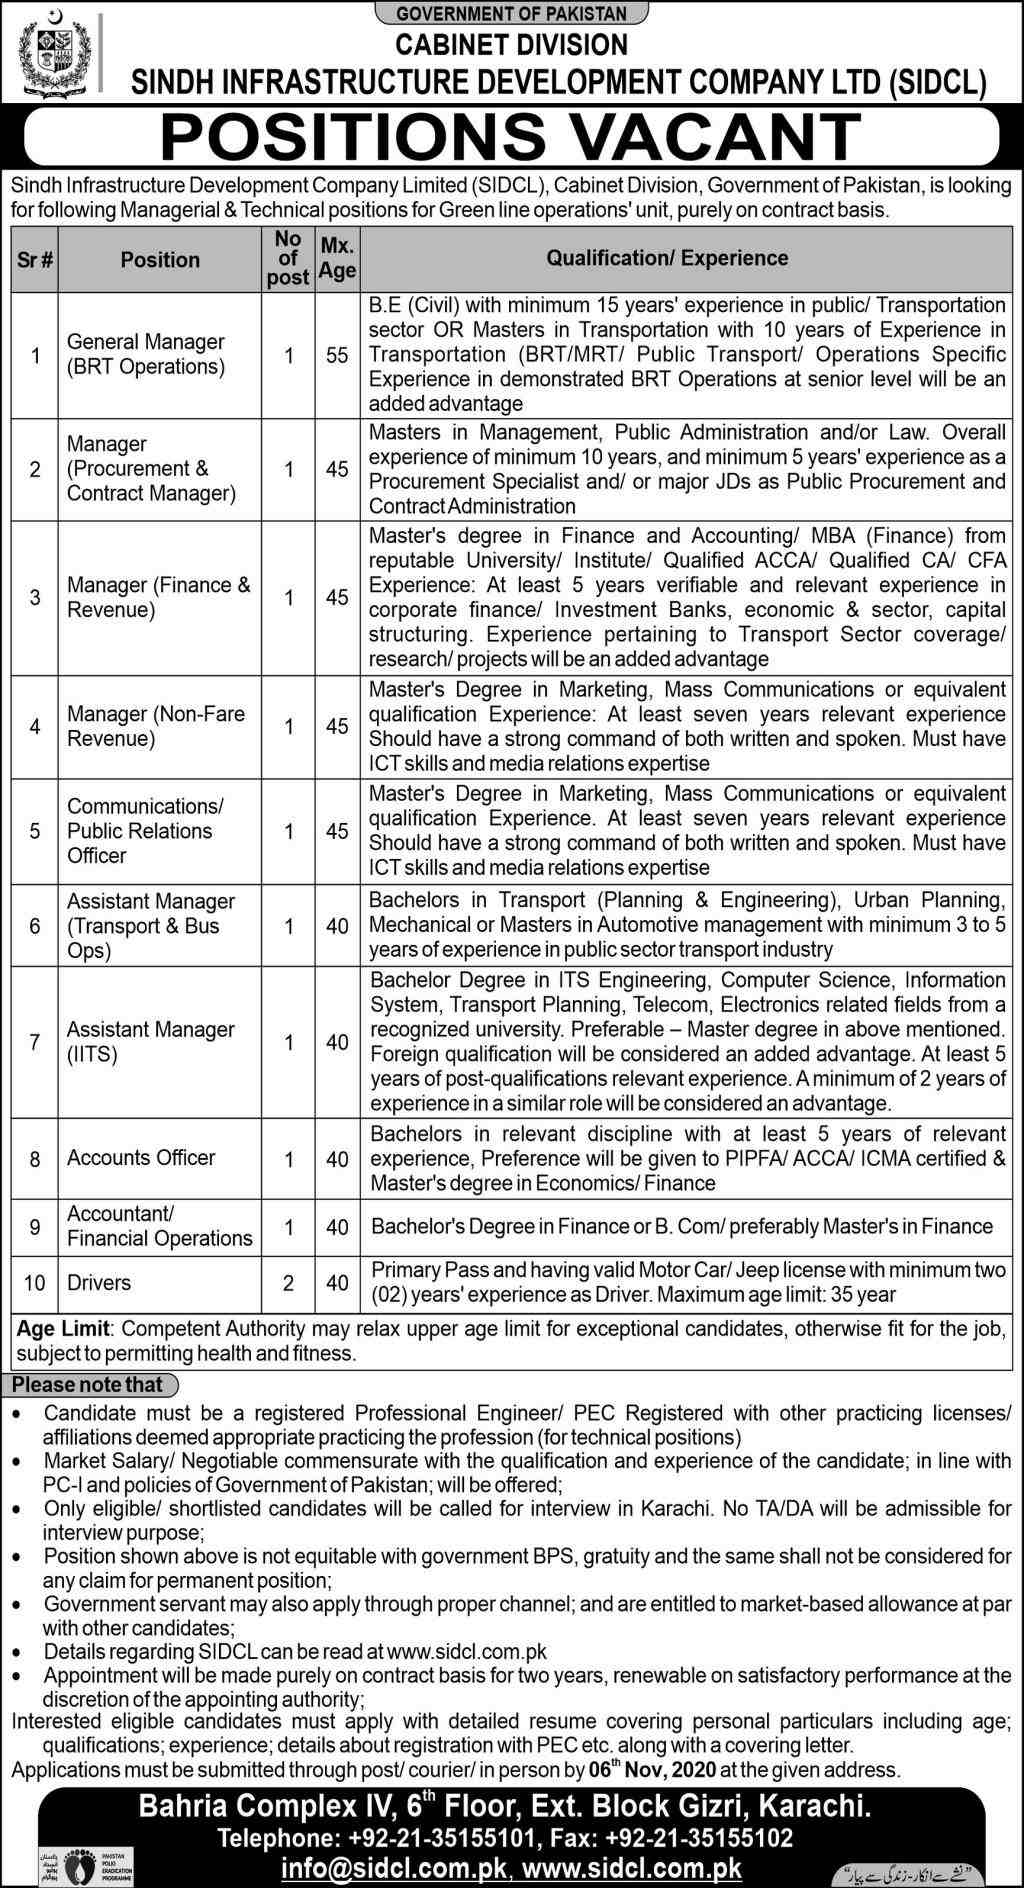 Cabinet Division SIDCL Jobs 2020 Sindh Infrastructure Development Company | Assistant Manager